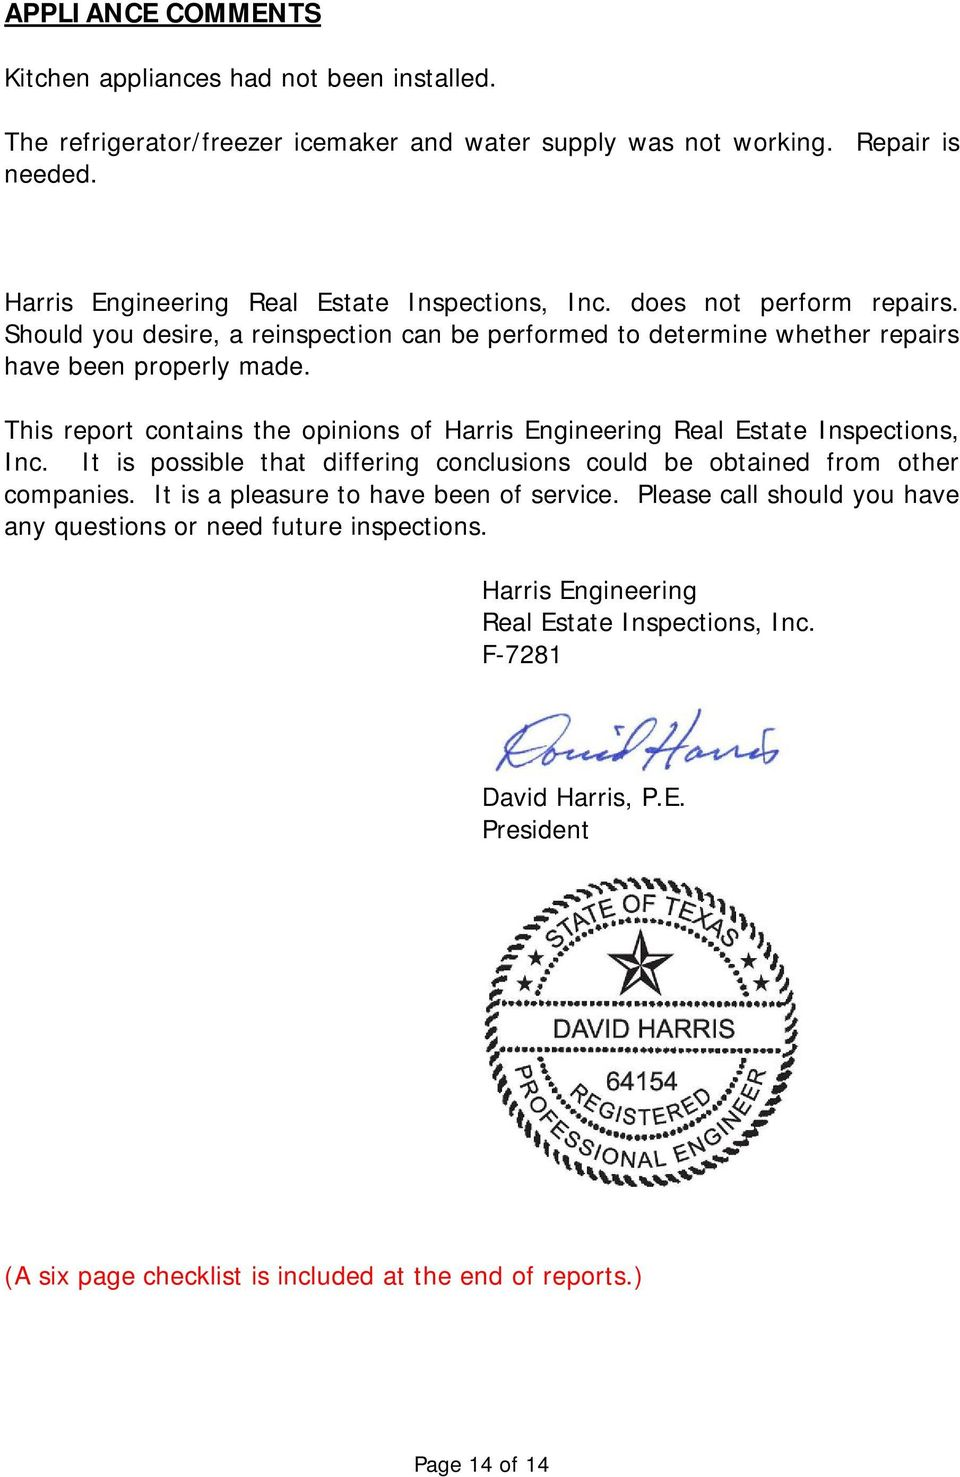 This report contains the opinions of Harris Engineering Real Estate Inspections, Inc. It is possible that differing conclusions could be obtained from other companies.